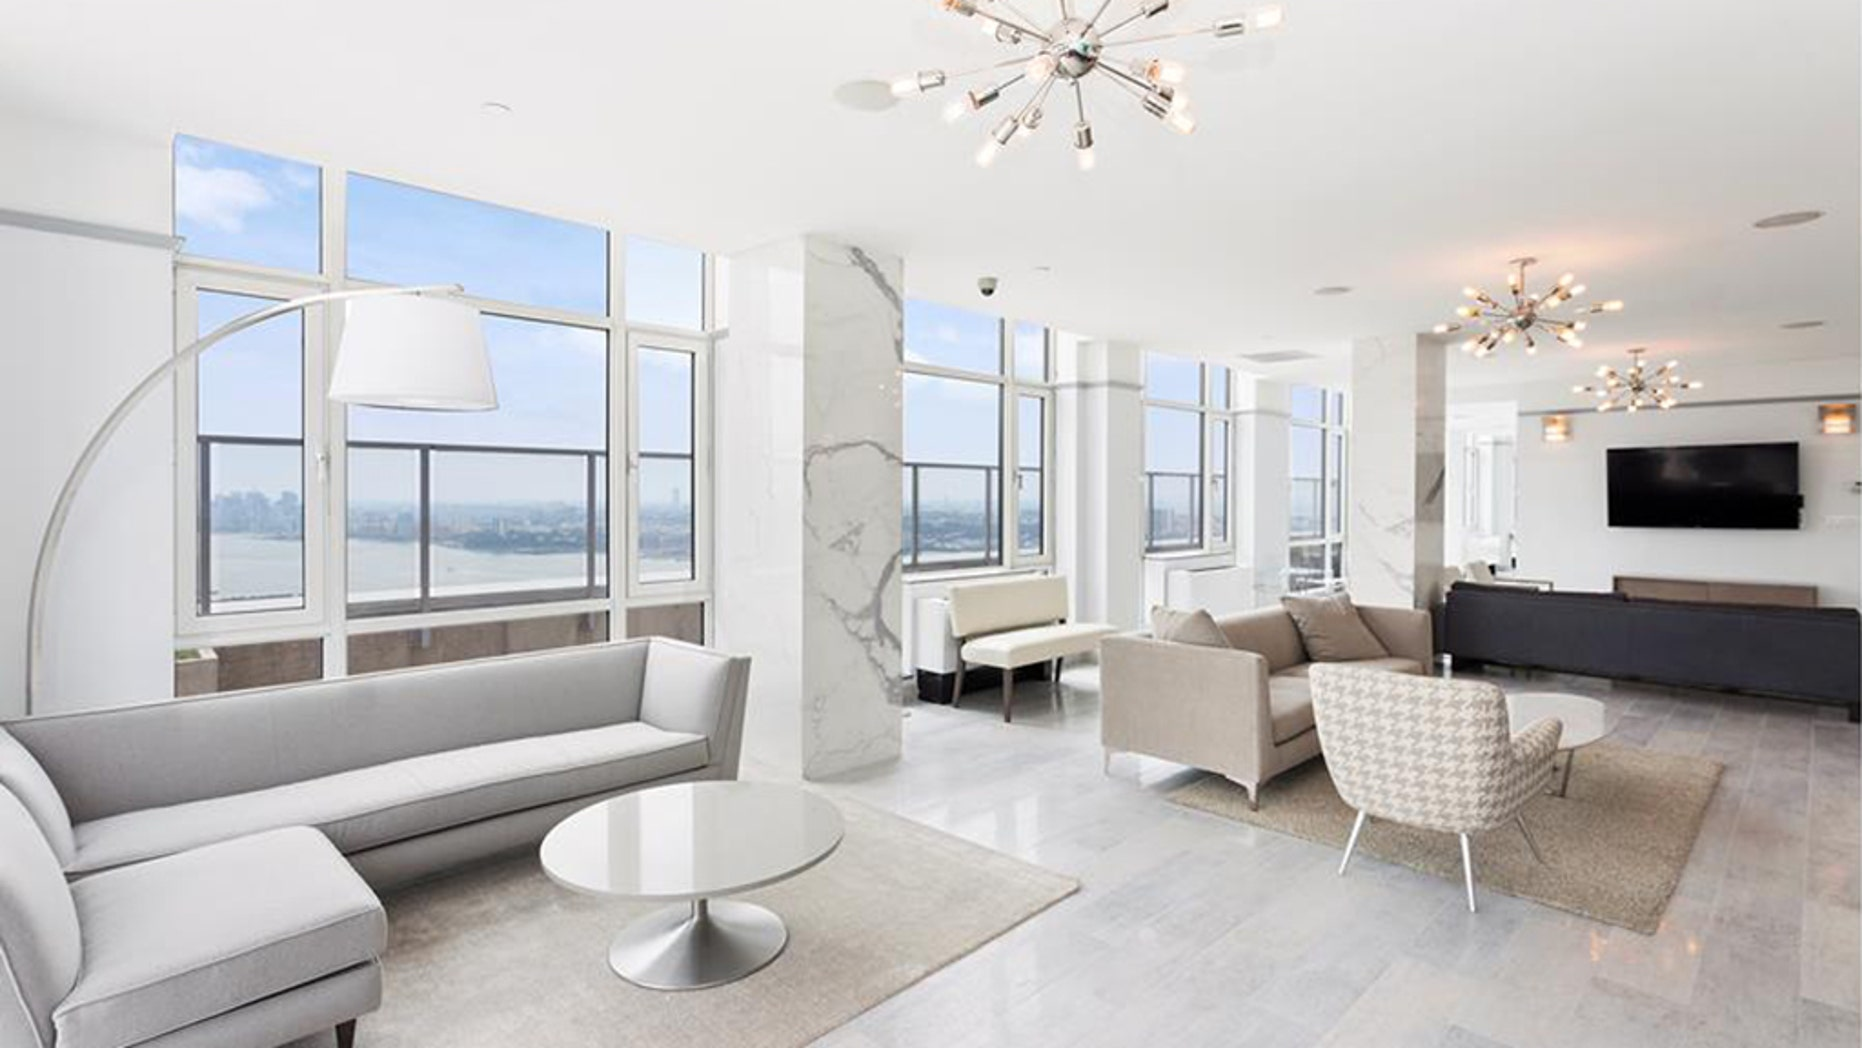 With an asking price of $85 million, the 15,000-square-foot duplex penthouse at the Atelier in New York City costs $5,666 per square foot.